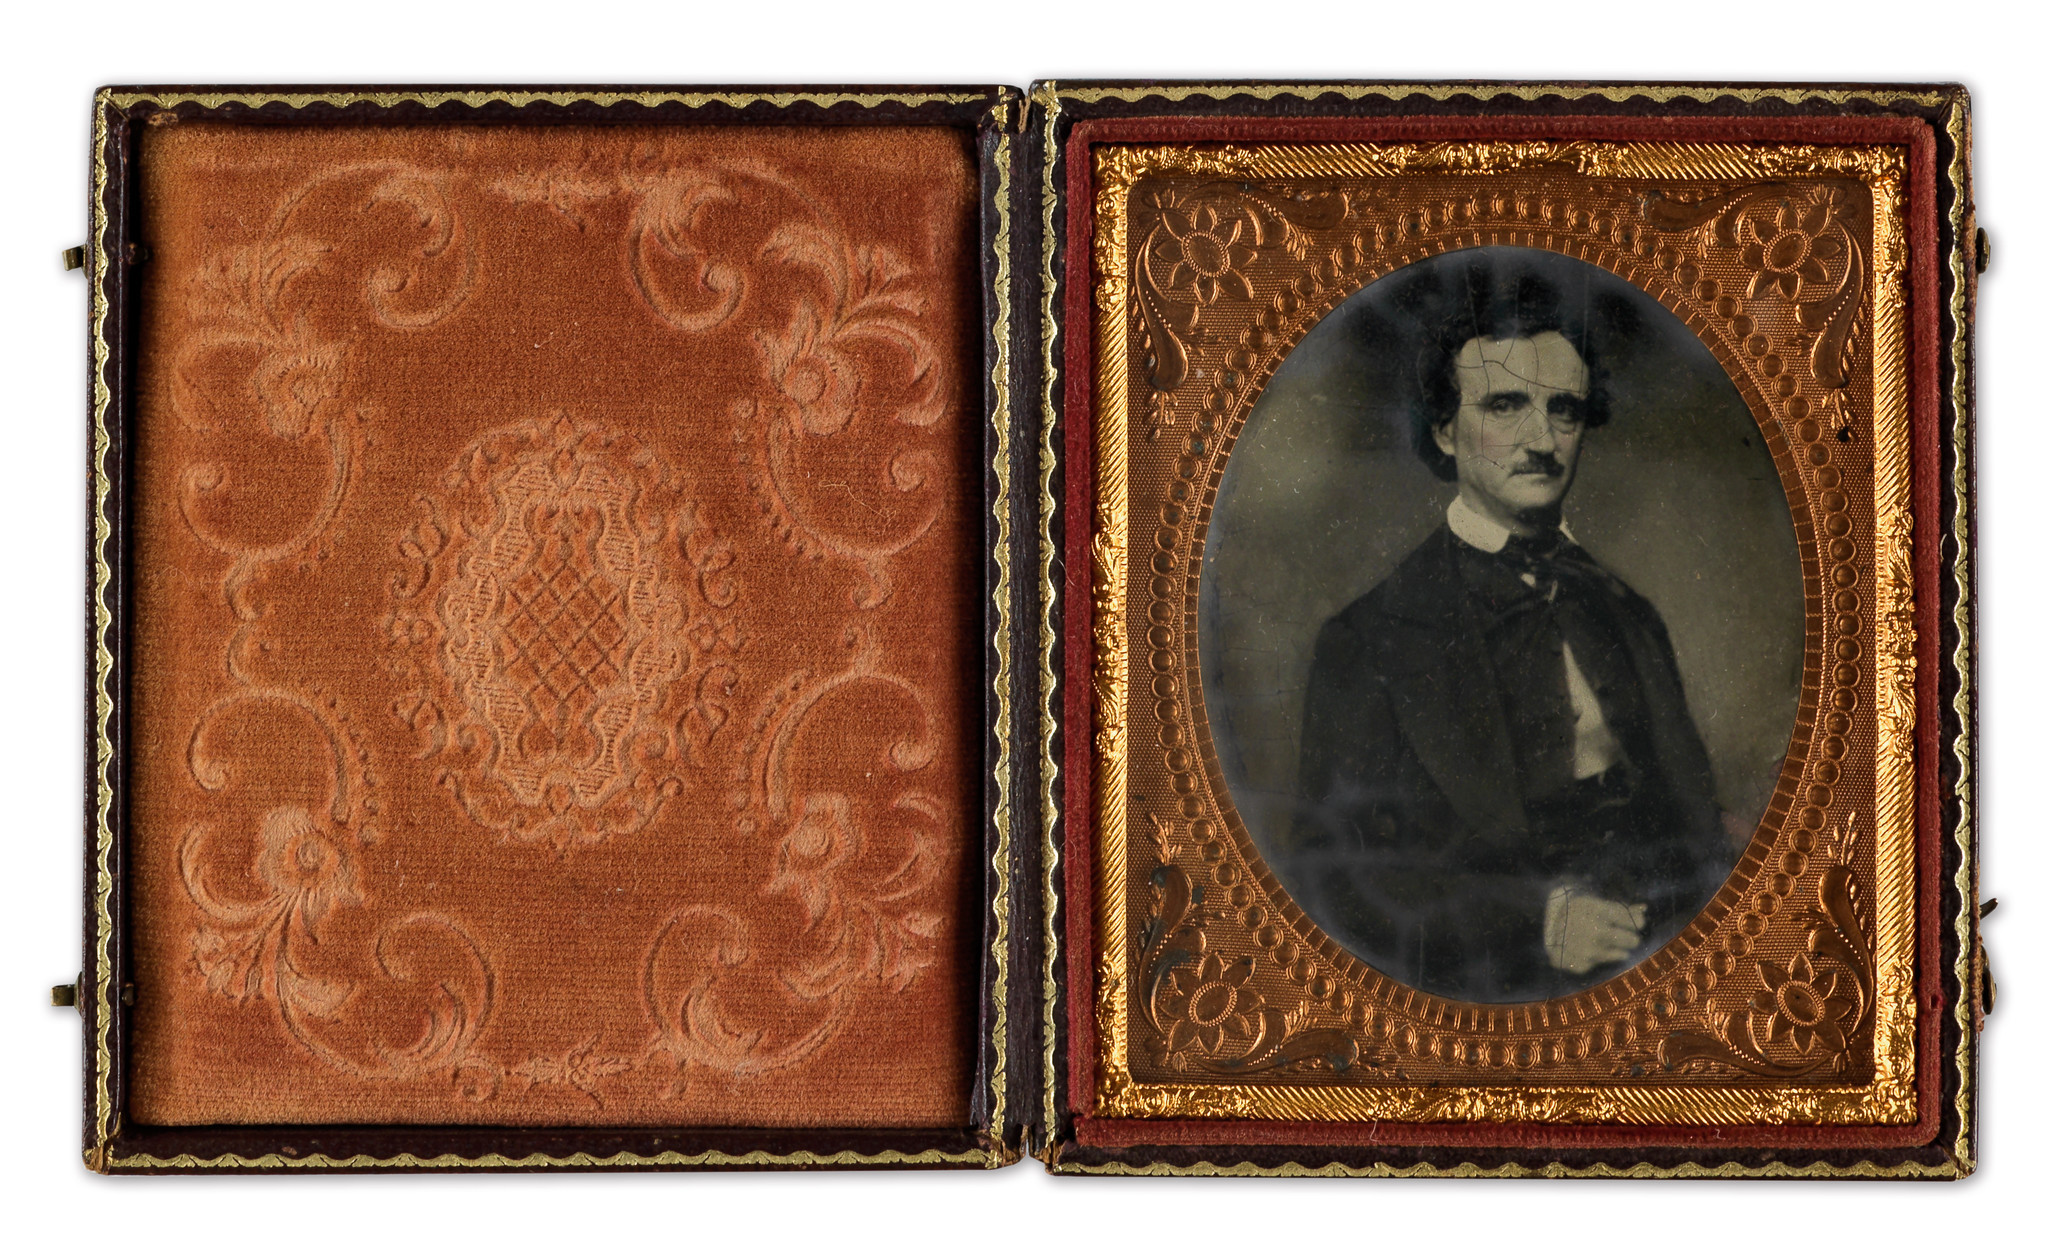 Rare Photo Of Edgar Allan Poe Goes Up For Auction At New York Gallery    Baltimore Sun